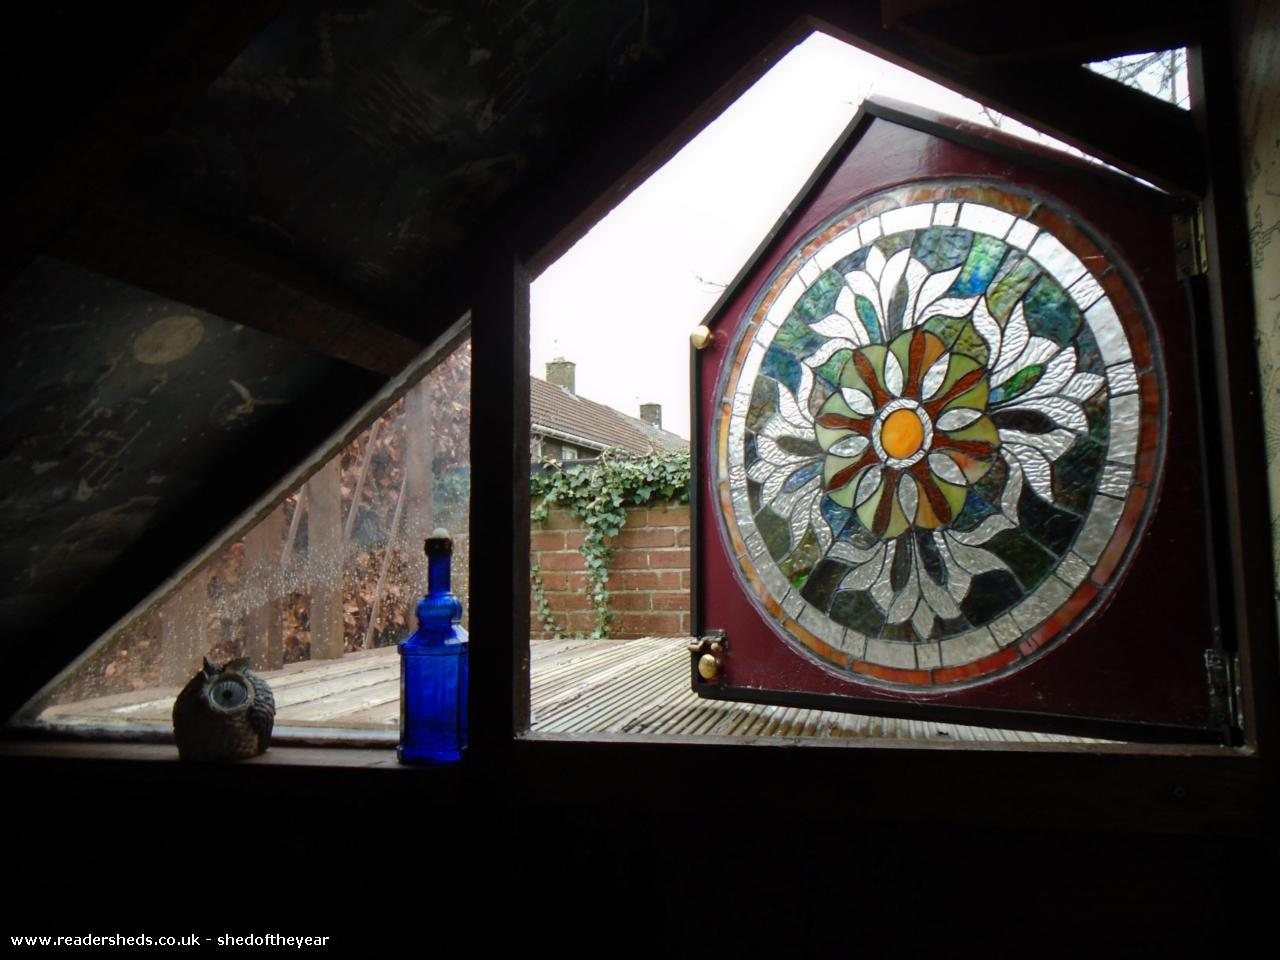 Photo of Ellie's Den, entry to Shed of the year-Stained glass door to flat roof